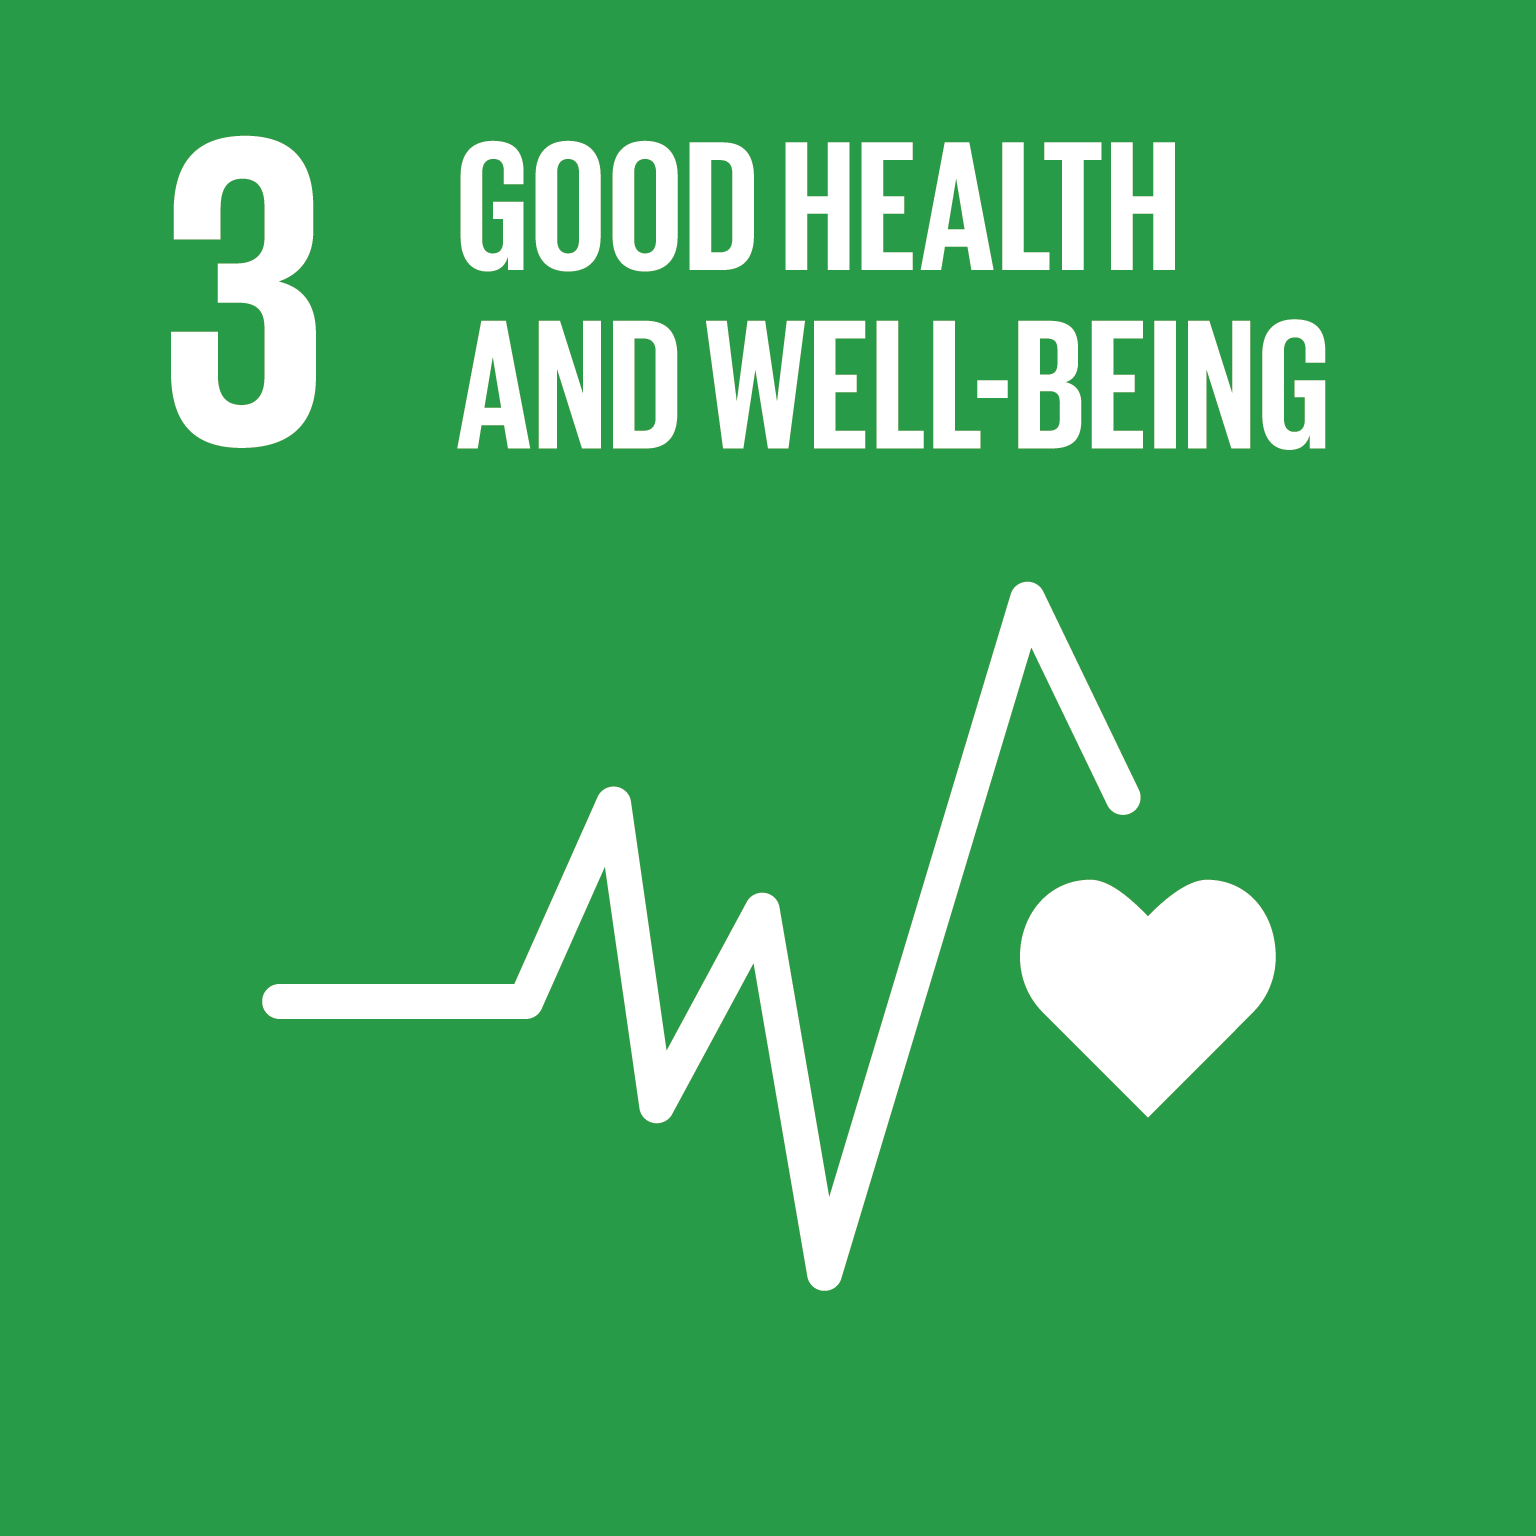 Goal 3 Good Health and Wellbeing